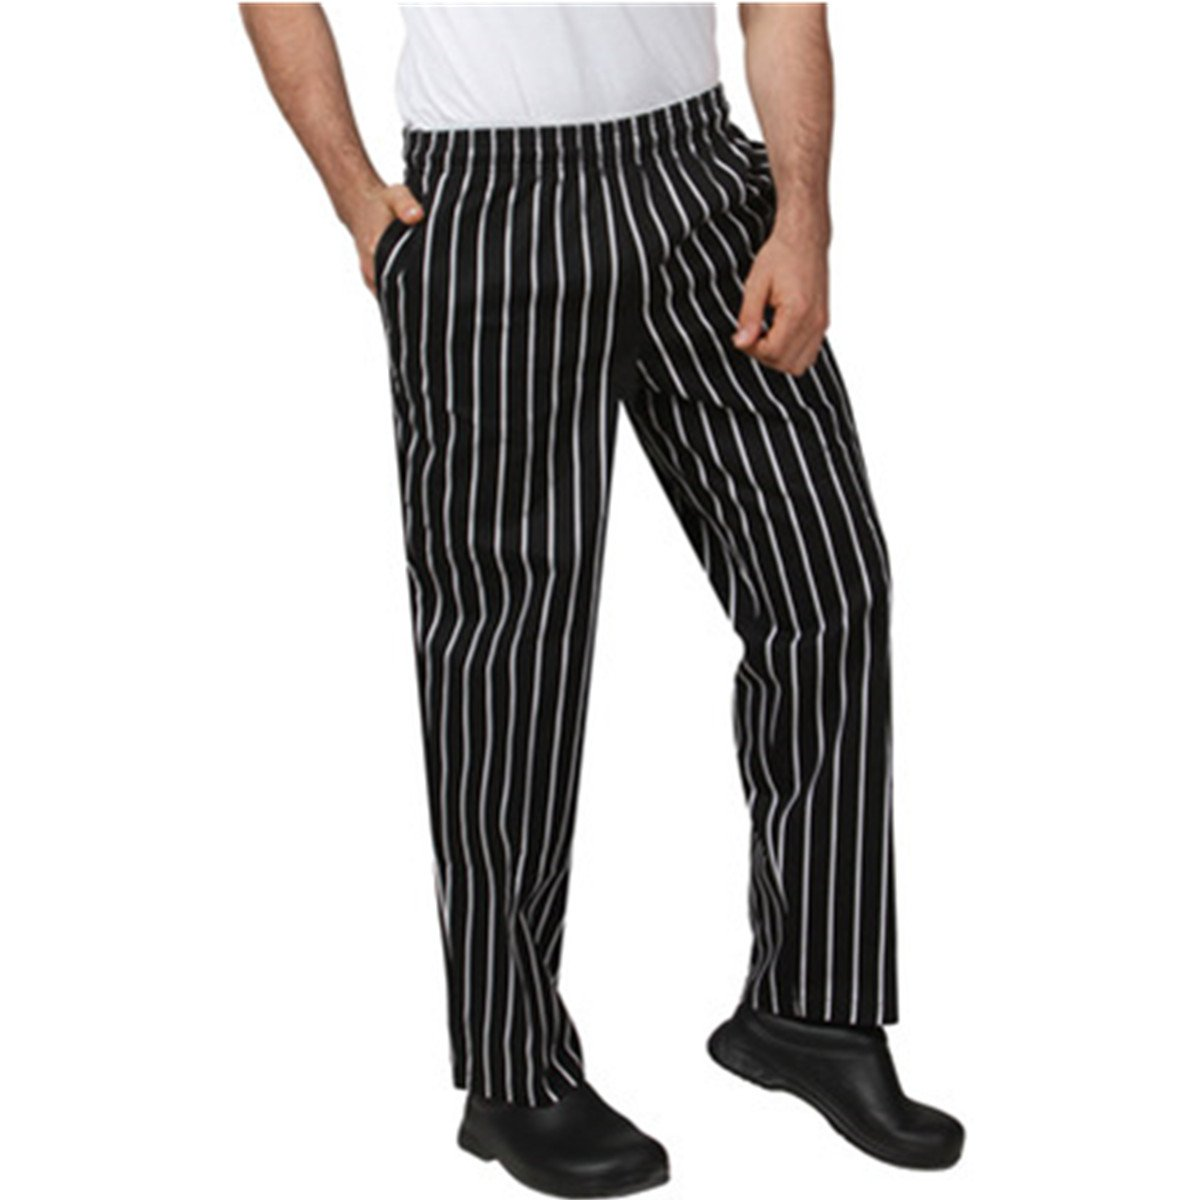 XINFU Chef's Striped Uniform Work Pant Hotel Western Restaurant Kitchen Cotton Trousers Chef Pant